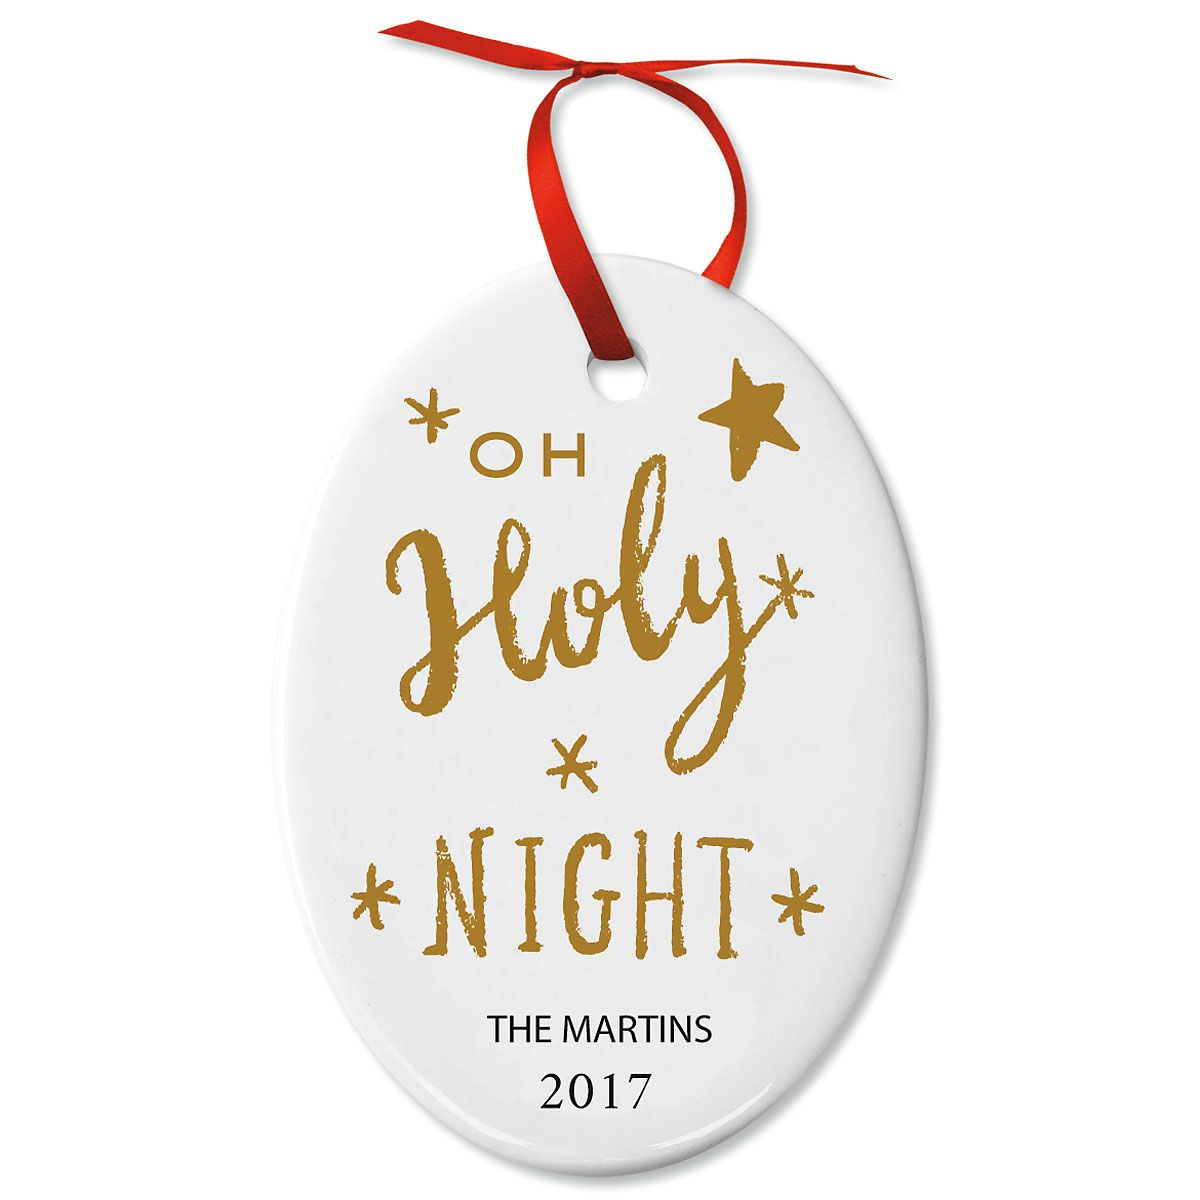 Oh Holy Night! Oval Christmas Personalized Ornaments